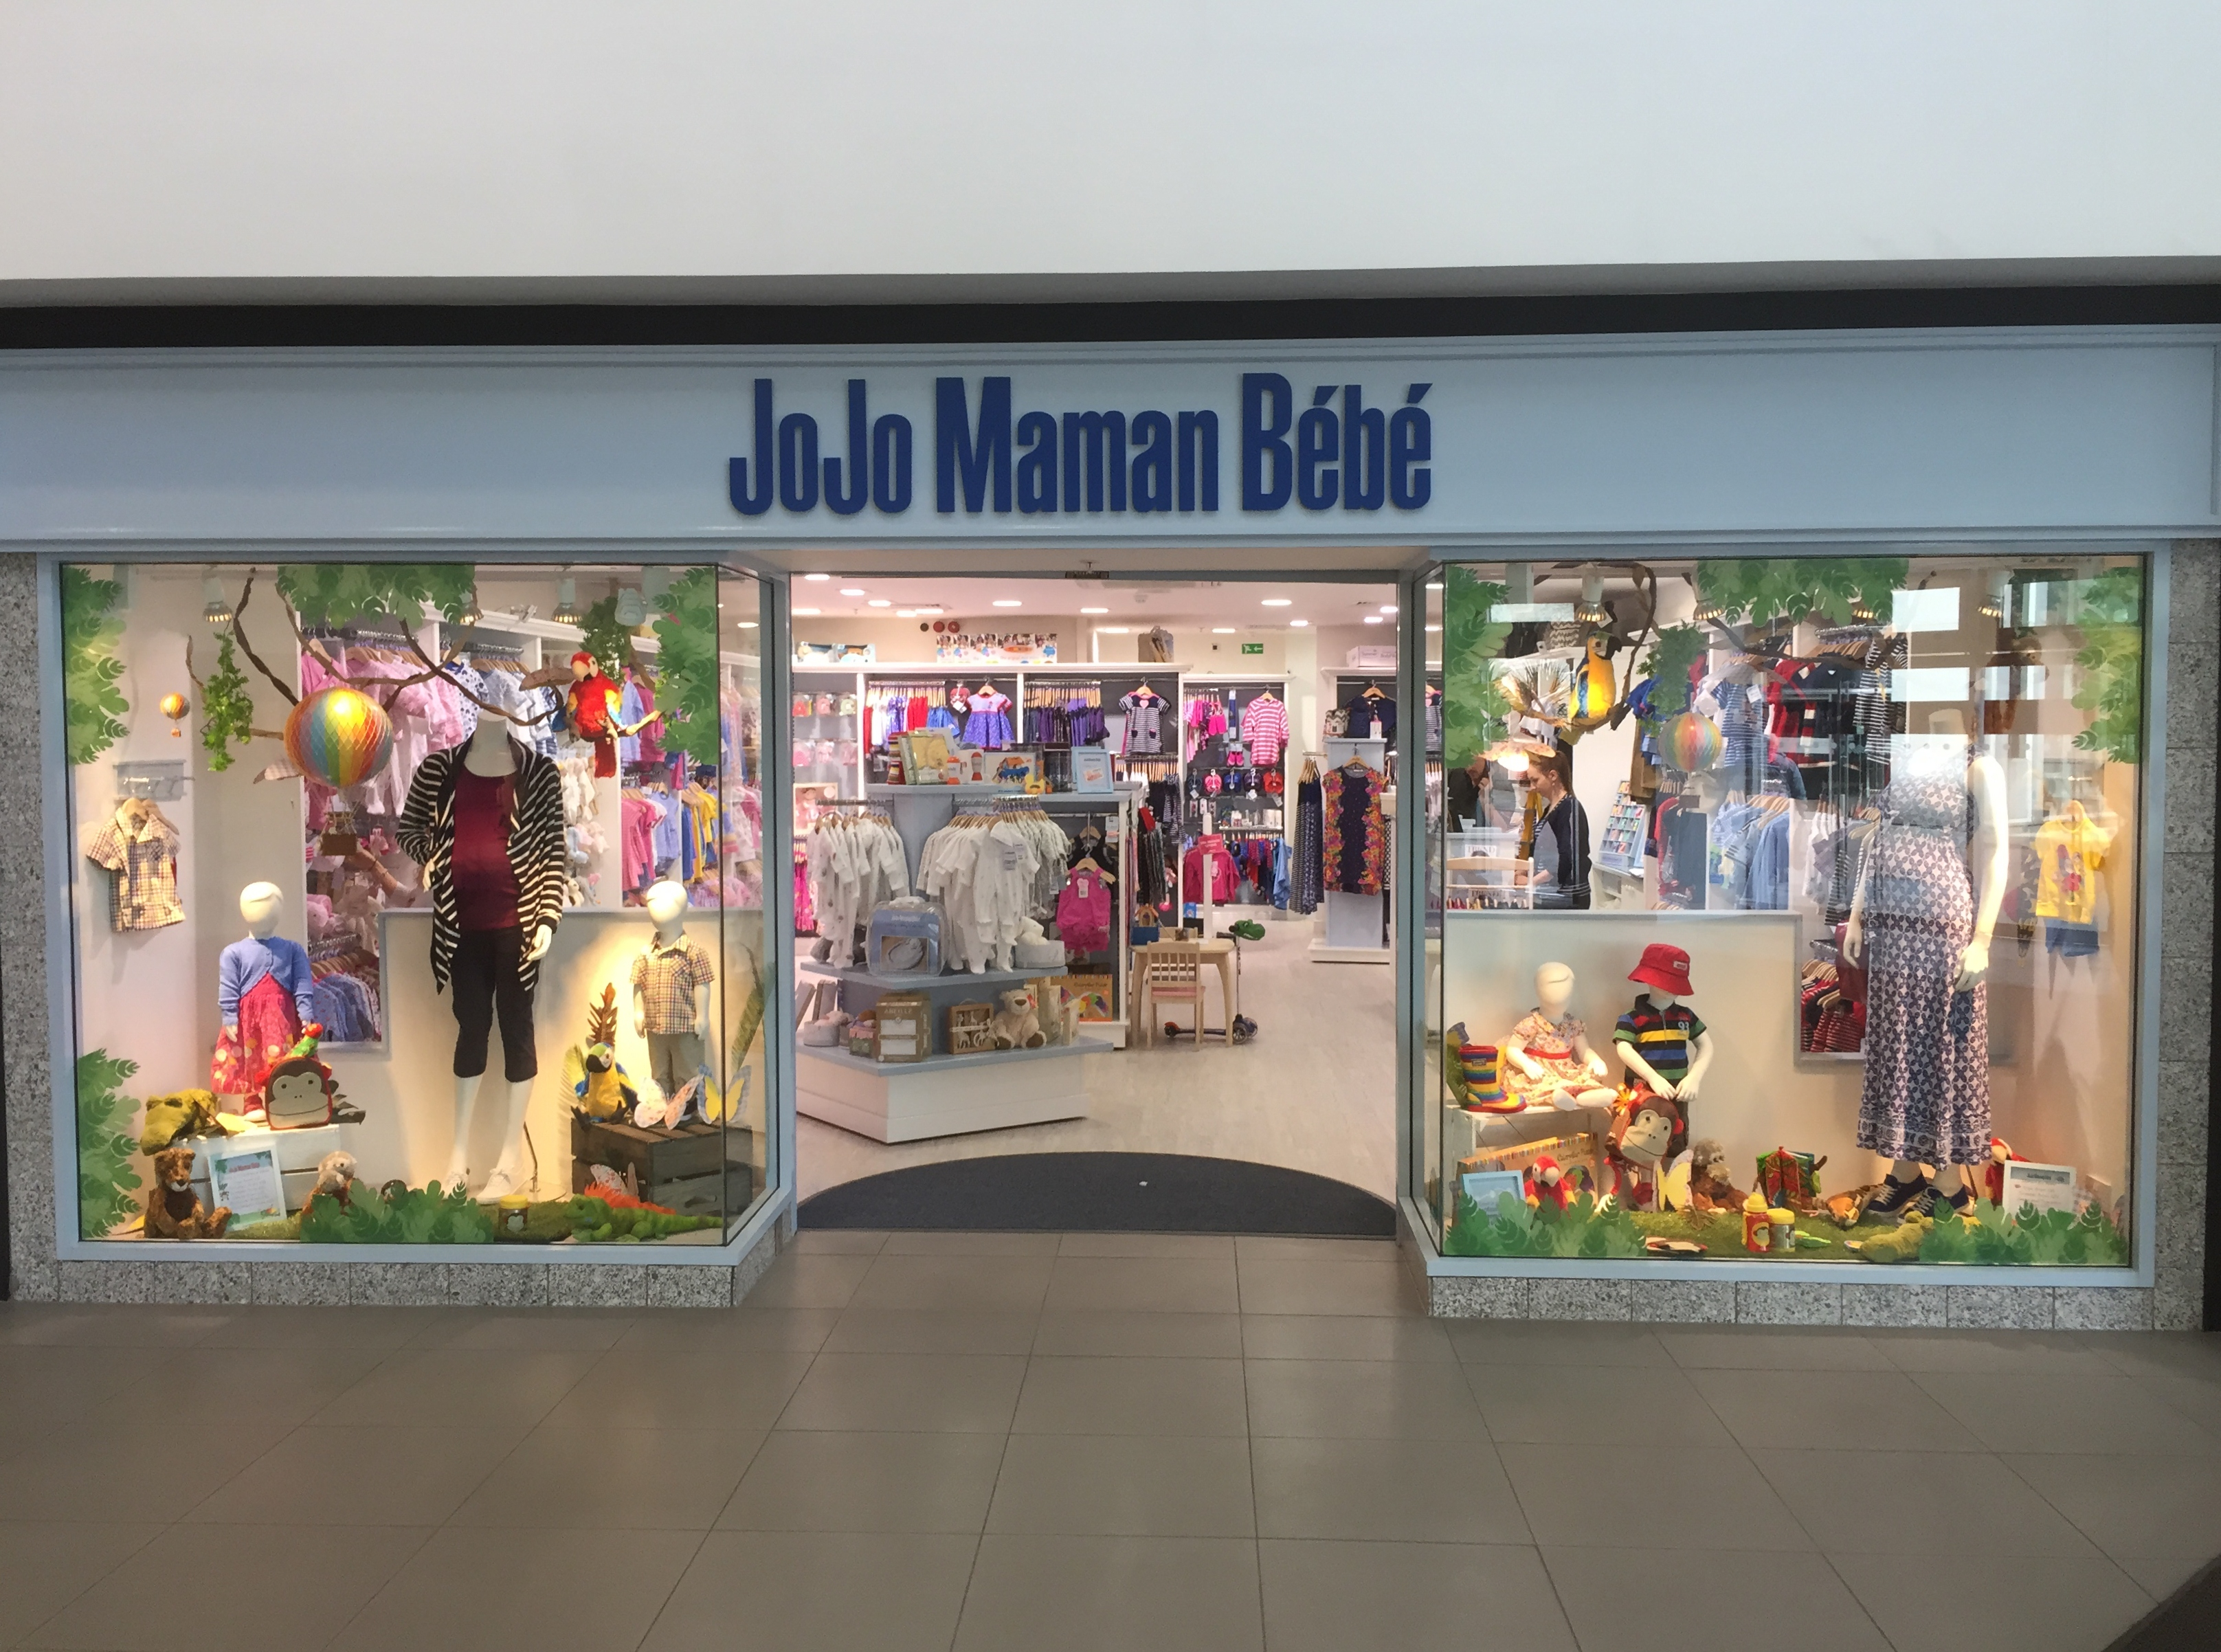 JoJo Maman Bébé, a British brand focused on maternity and baby clothing, nursery items, gifts and toys, is opening its first U.S. retail outlets in Fairfield County. 60 Greenwich Ave. Photo by.